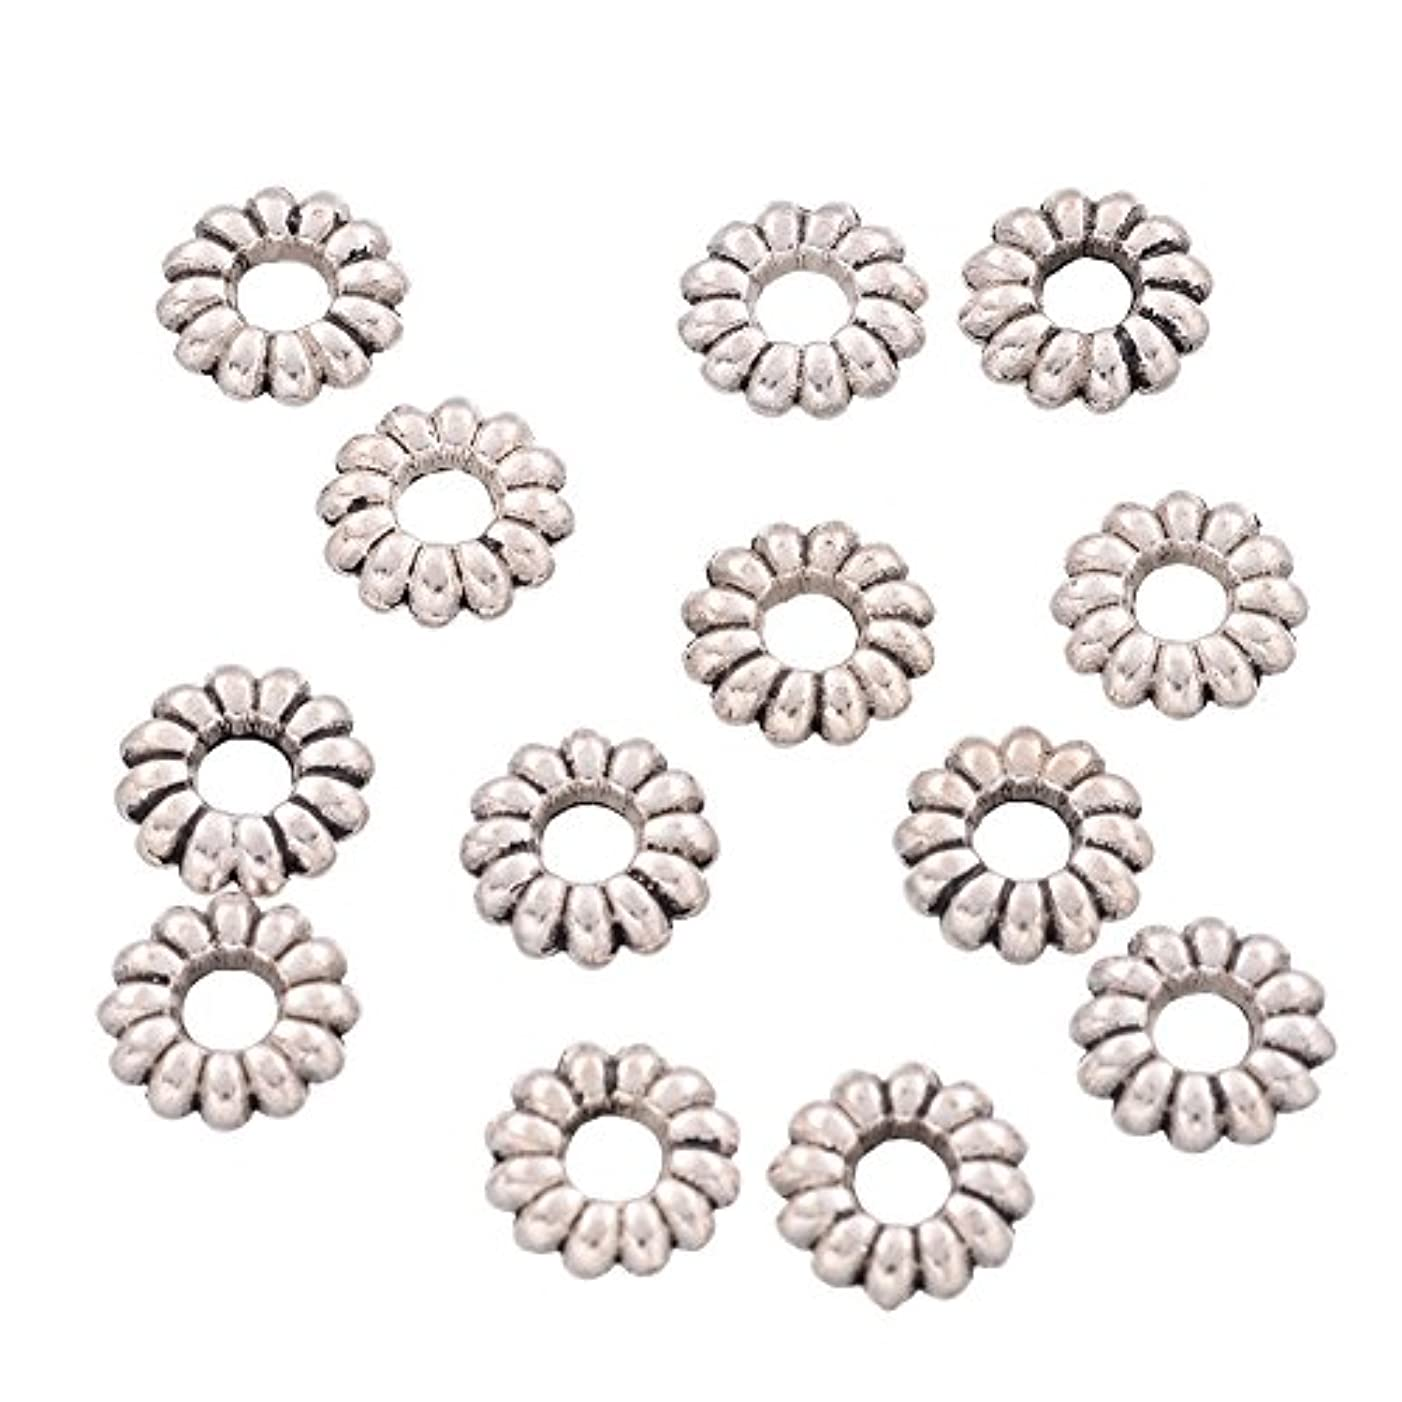 NBEADS 1000 Pcs Rondelle Tibetan Silver Beads, Lead Free & Nickel Free & Cadmium Free, Antique Silver, About 6.5mm Thick, Hole: 2mm